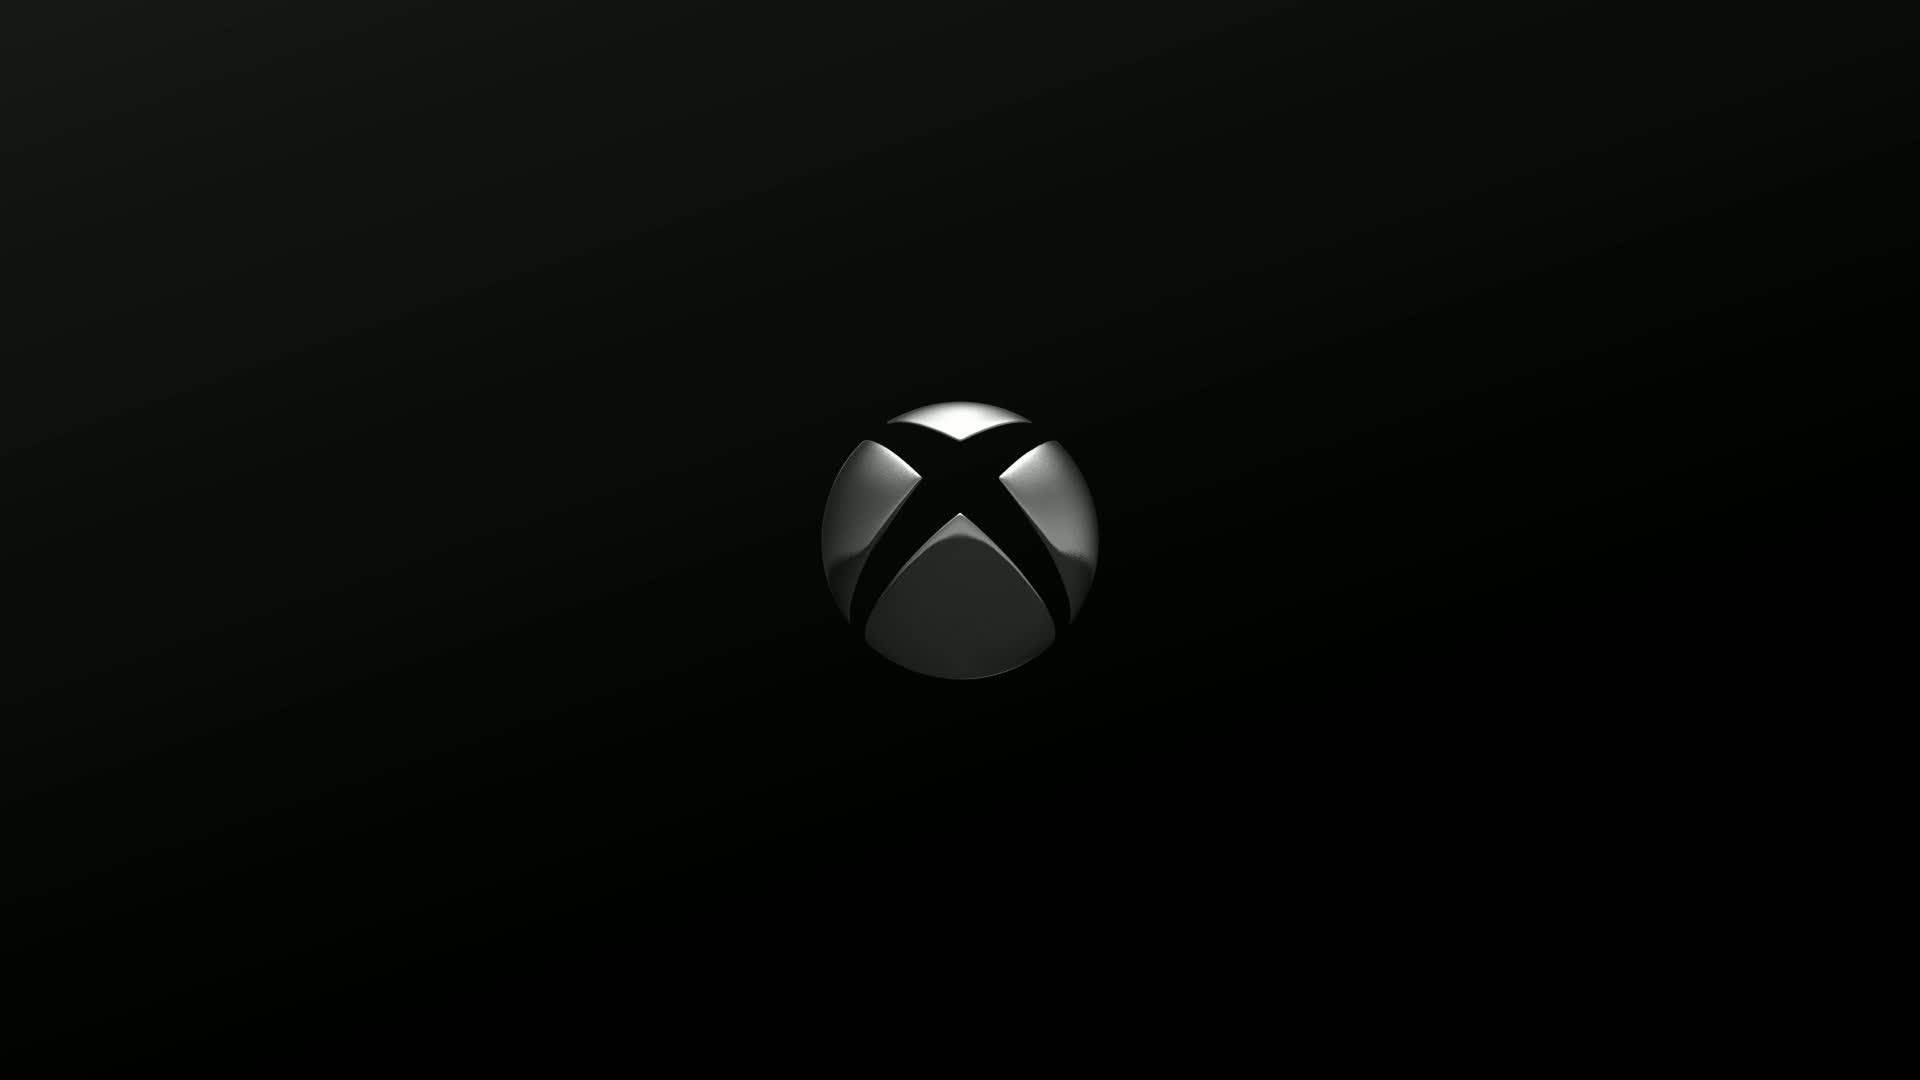 Xbox wallpaper download free stunning high resolution - Xbox one wallpaper 1920x1080 ...